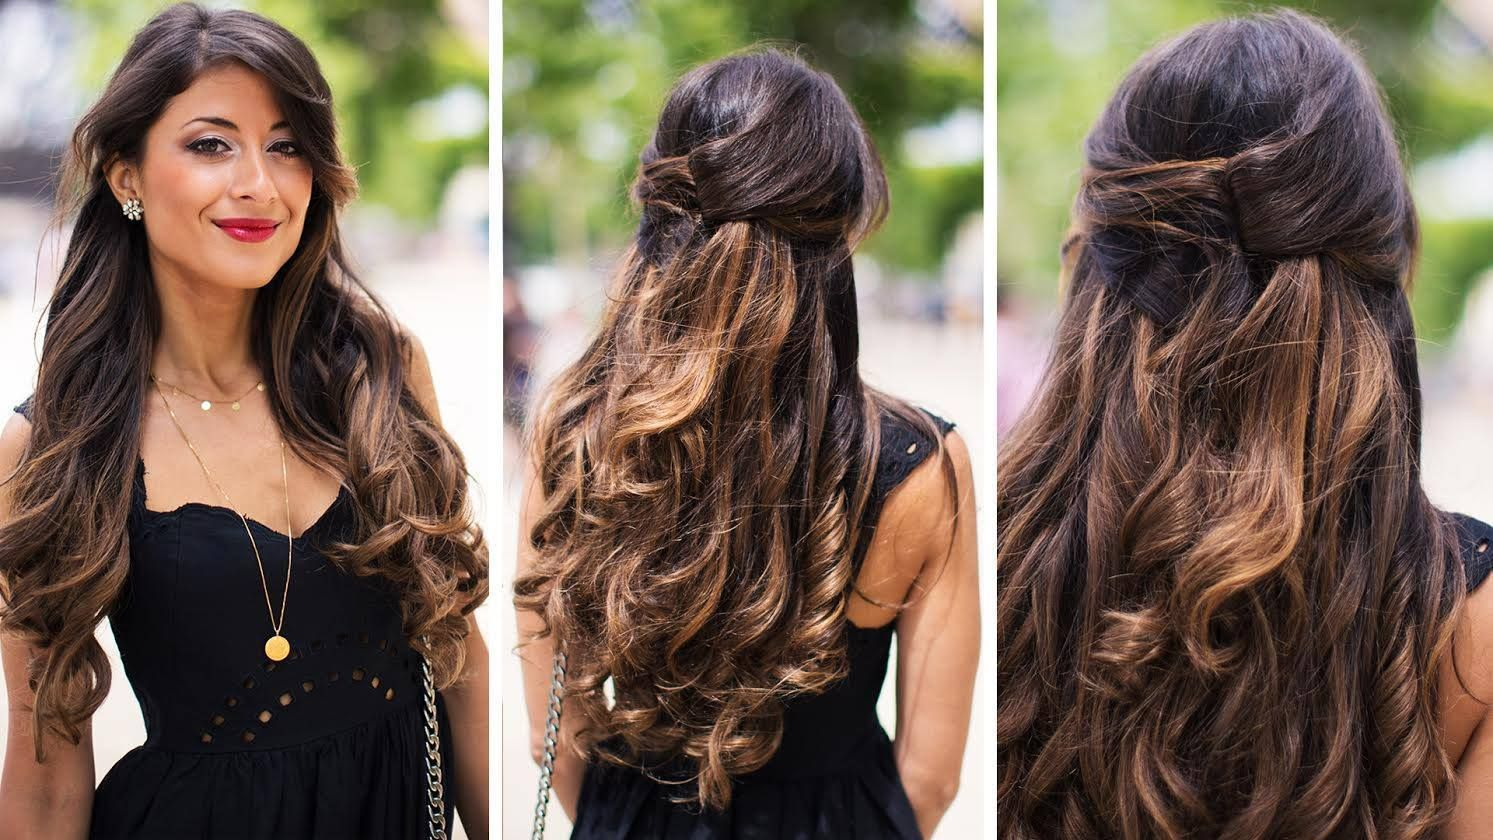 grecian hairstyles for bride : simple hairstyle ideas for